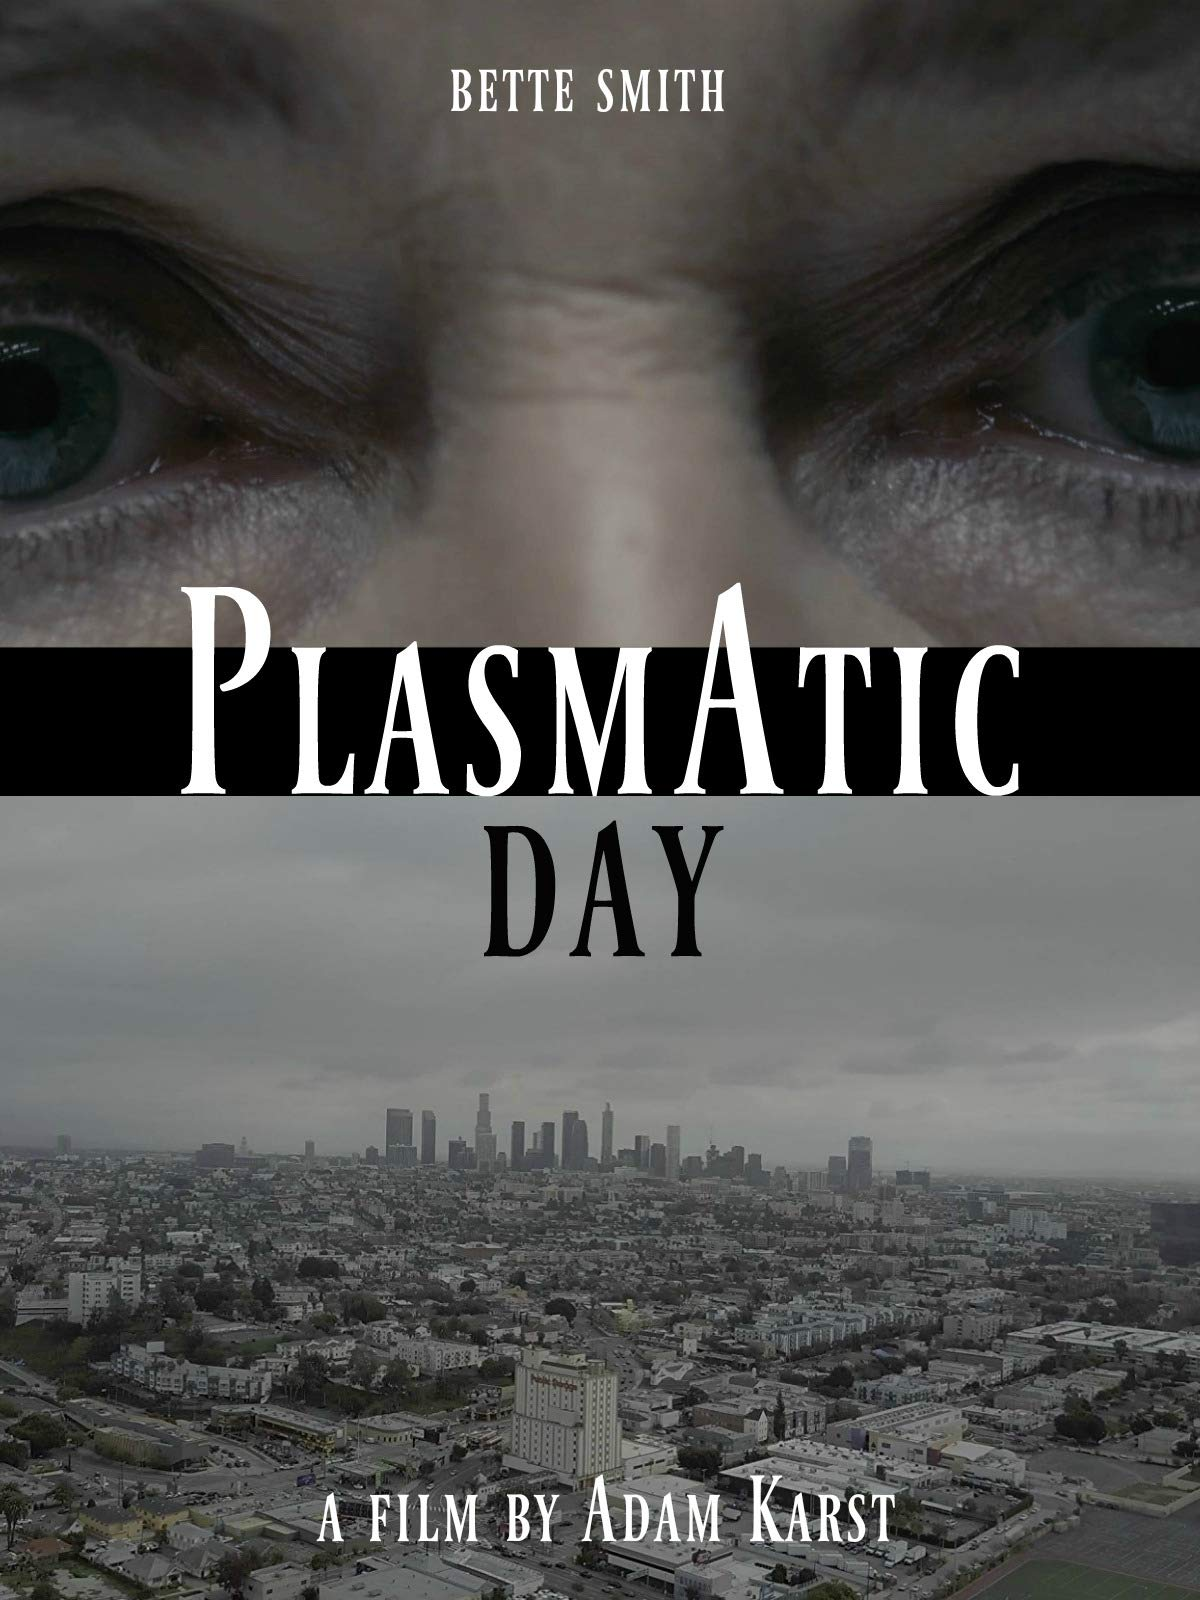 Plasmatic Day